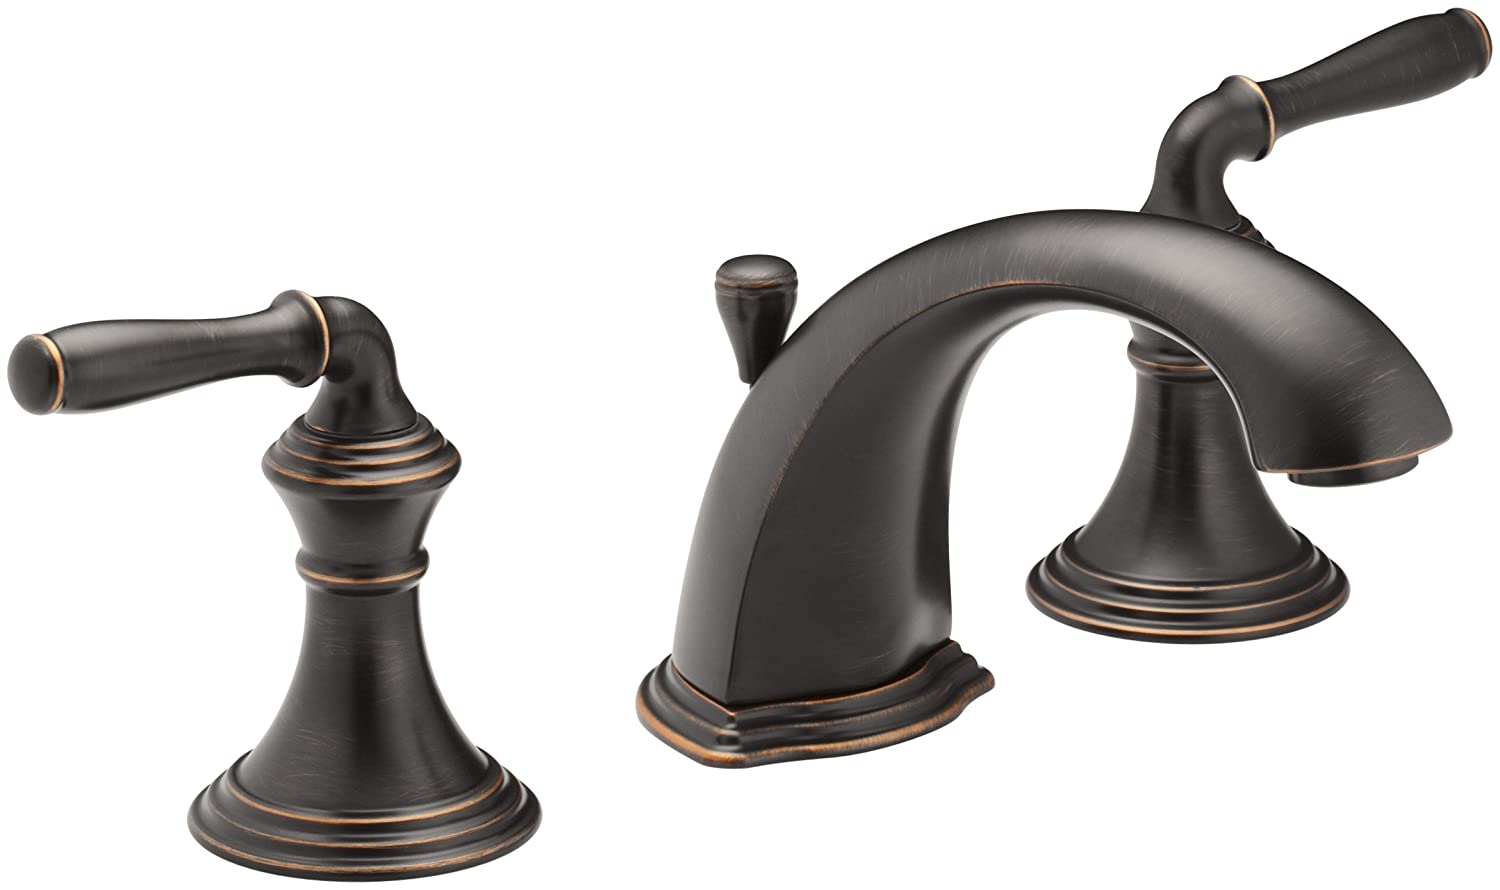 Kohler devonshire k 394 4 2bz 2 handle widespread bathroom faucet with metal drain assembly in oil rubbed bronze touch on bathroom sink faucets amazon